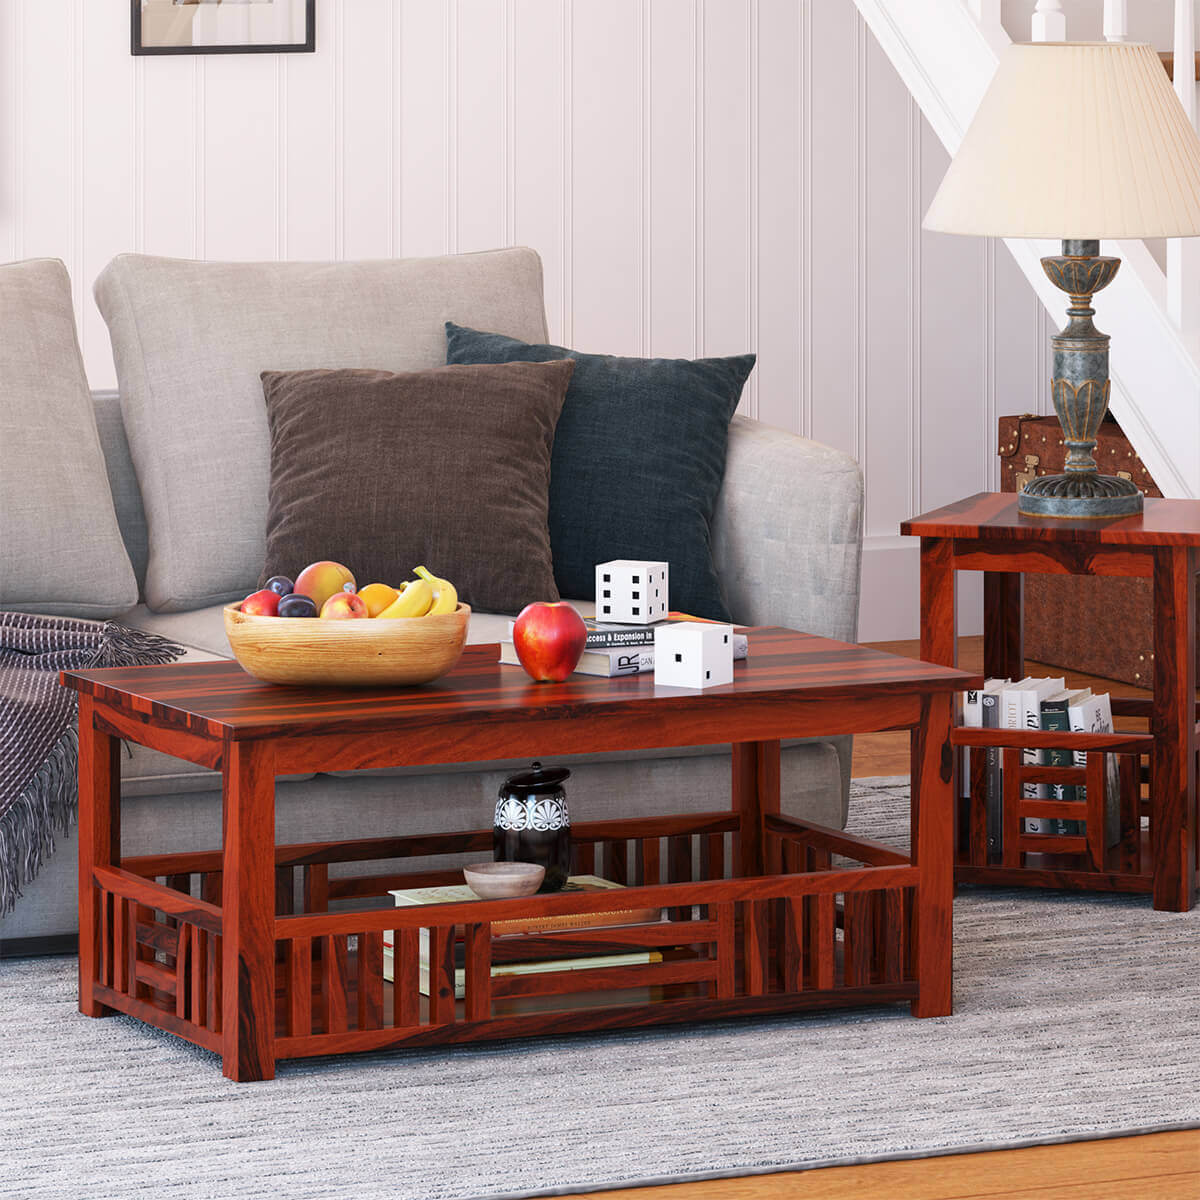 Yantis Mission Style Rustic Solid Wood Basket 2 Tier Coffee Table